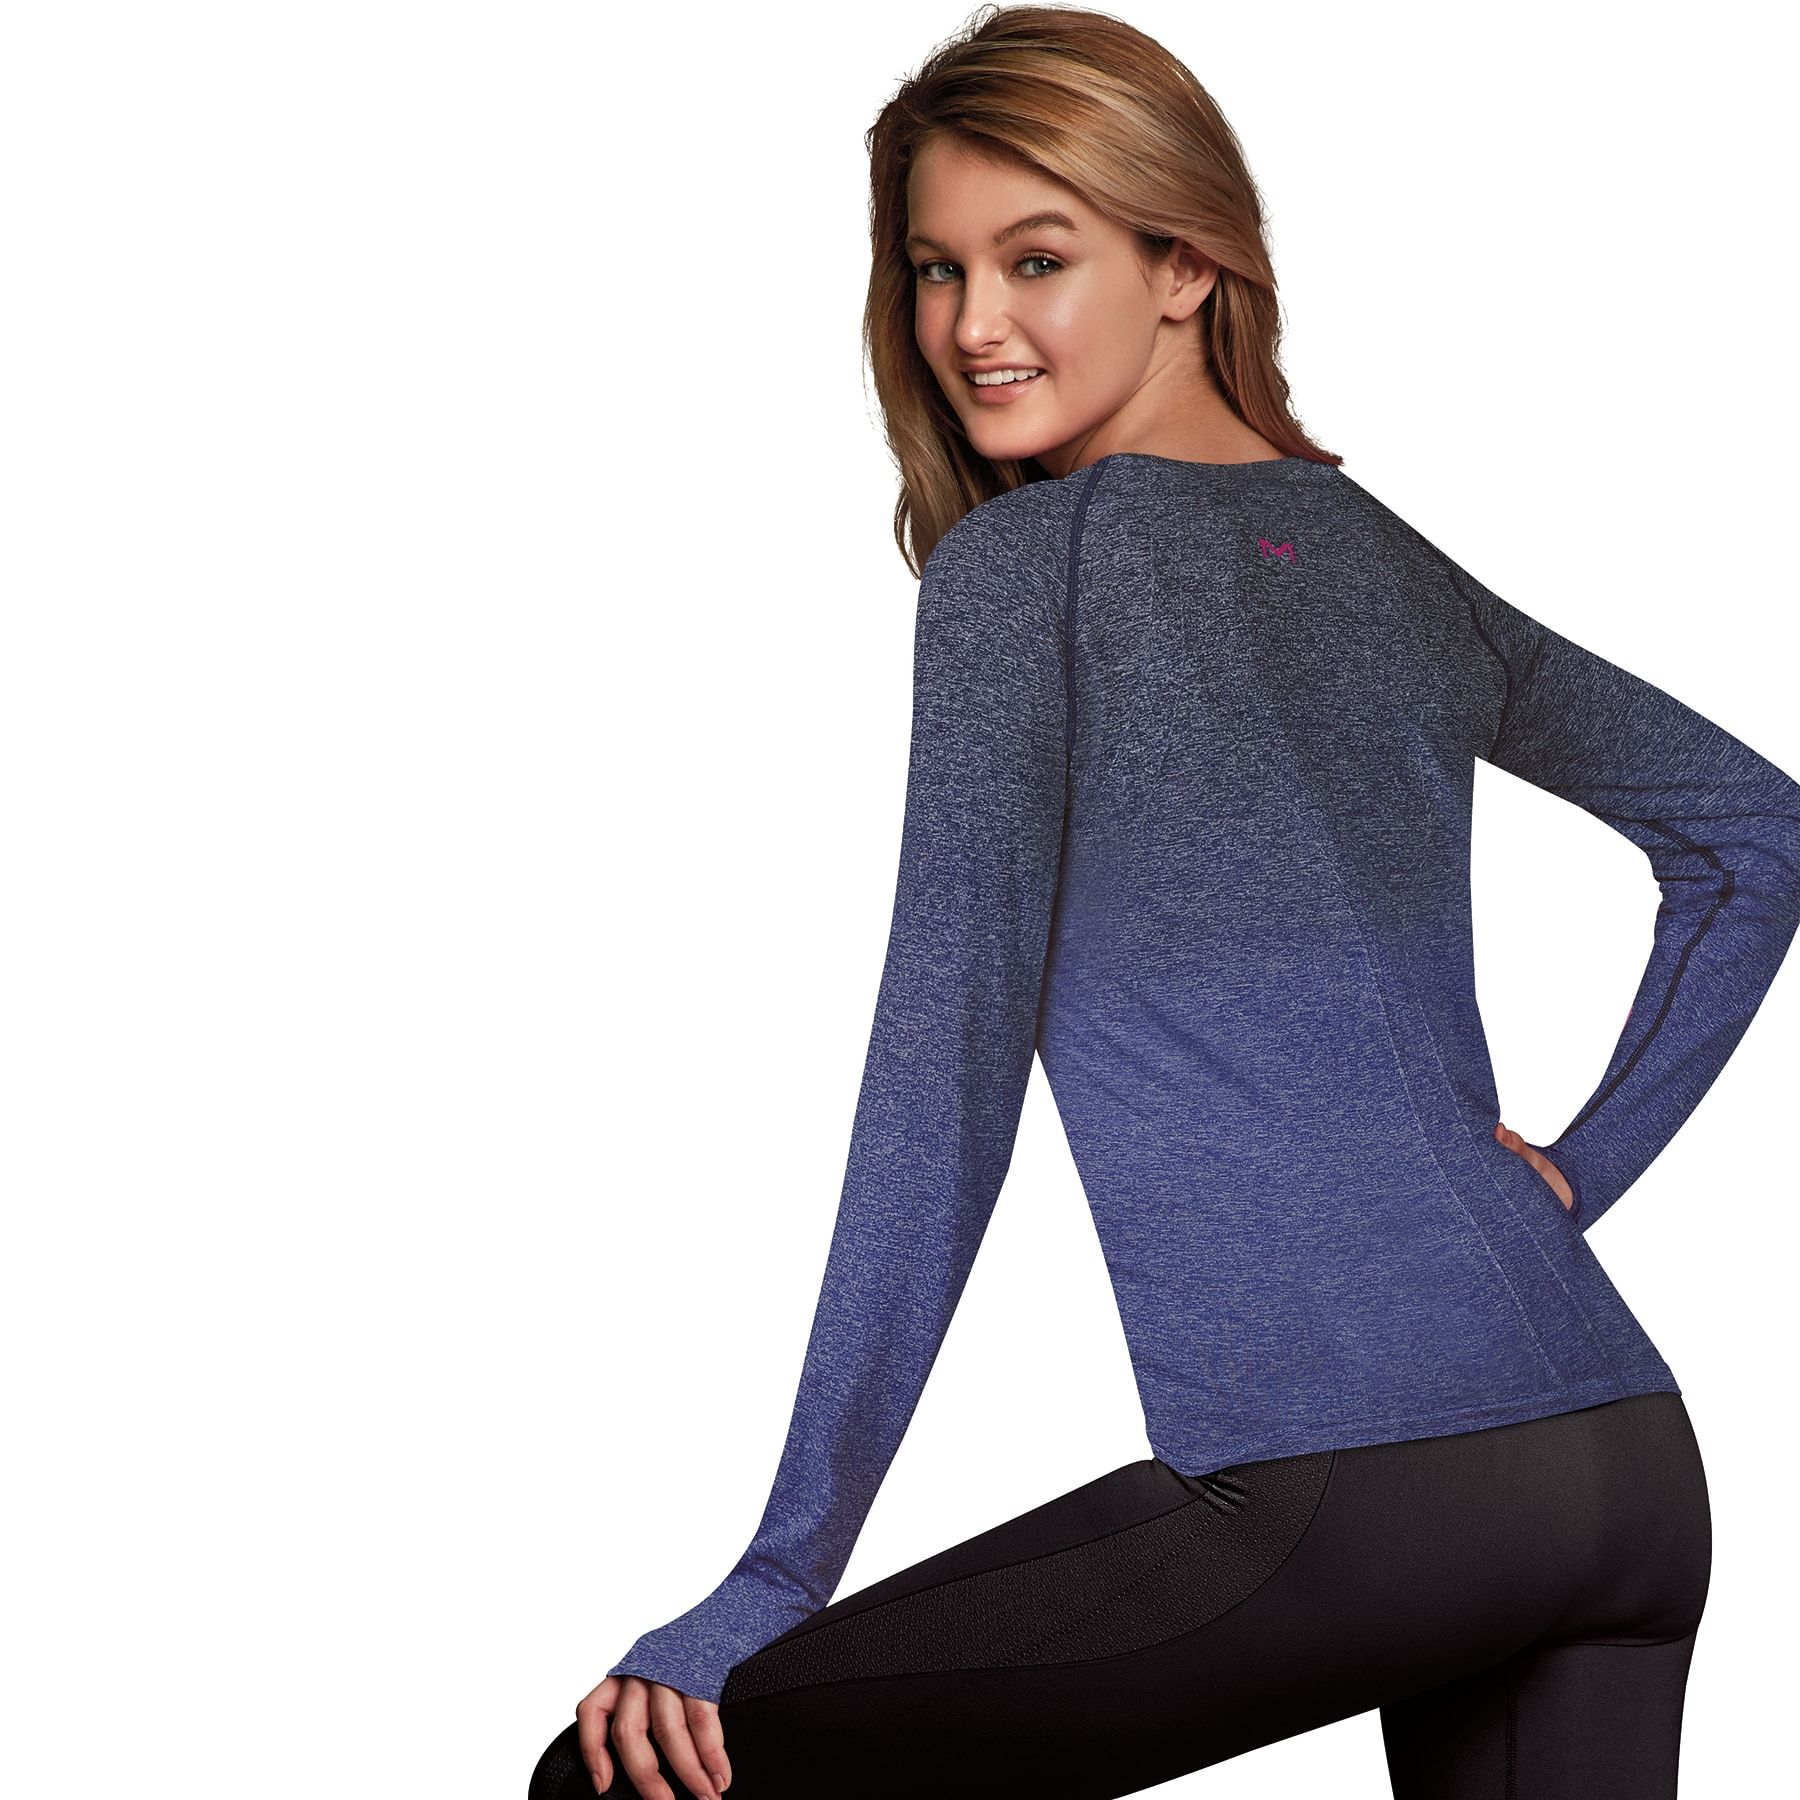 a88f85a6554ab0 Women's Maidenform Sport Base Layer Seamless Long Sleeve Top #Sport, #Base,  #Women, #Maidenform